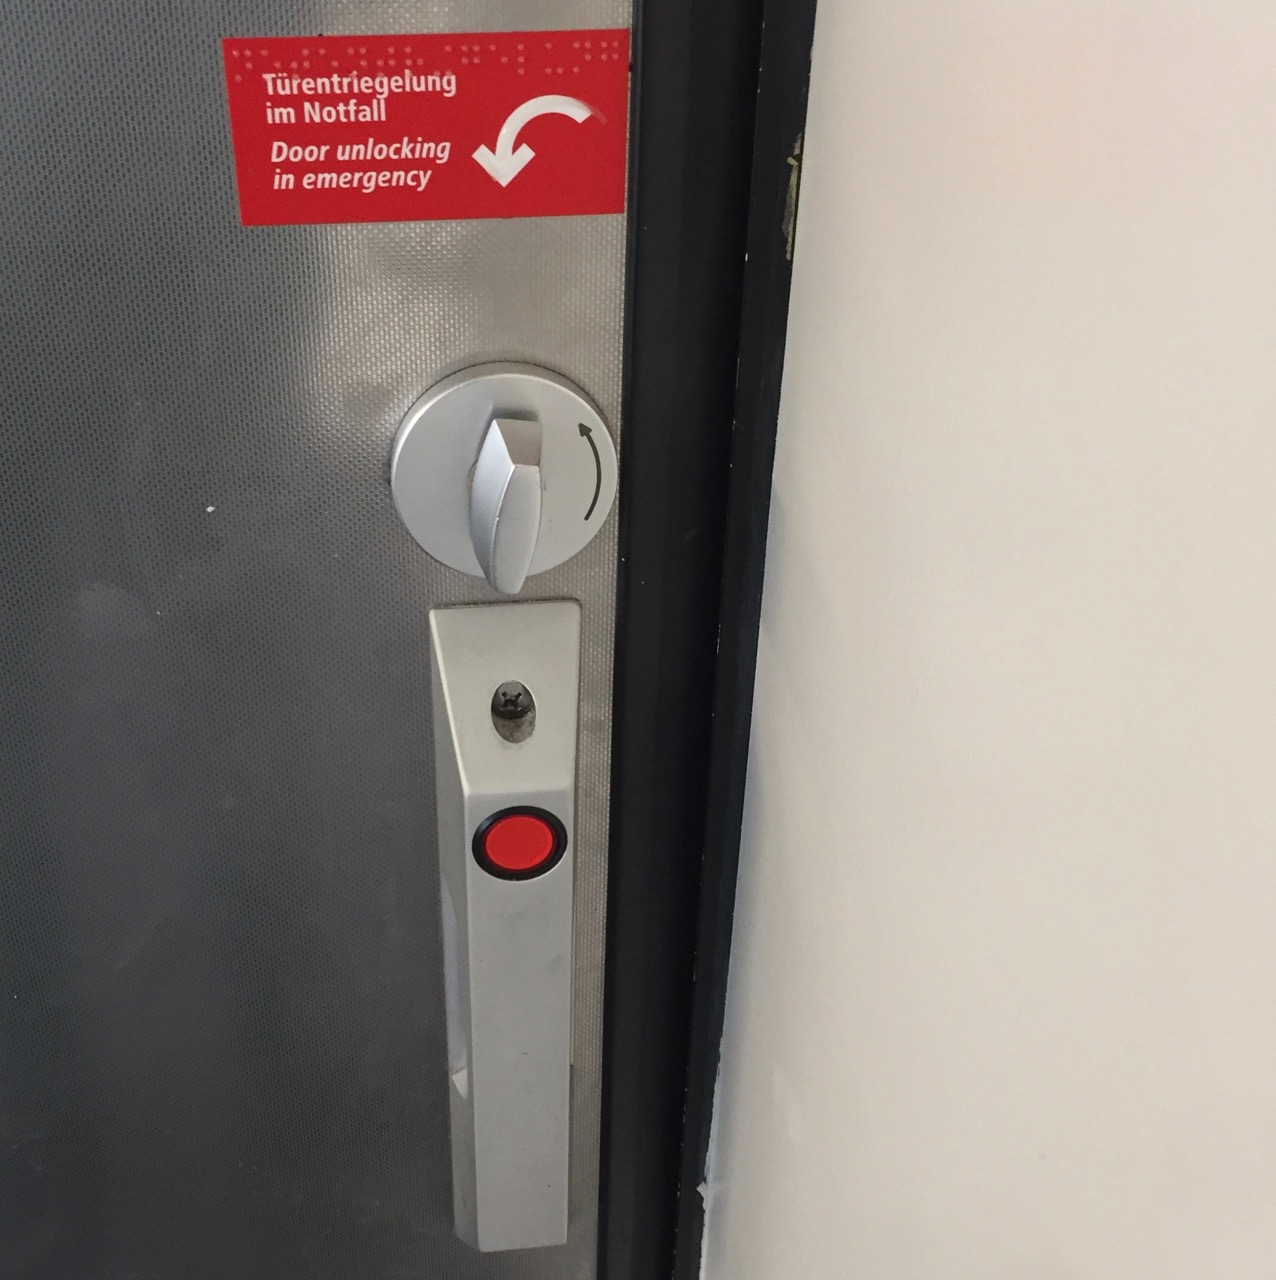 "The inside of the toilet door, a similar door handle as before is visible. But this time the red circle is at the top, and there is no green area for opening or closing. There is only a weird mechanical dial above the handle. And above that dial is a white note on red ground that says ""Door unlocking emergency"", next to an arrow indicating that dial must be turned counter-clockwise."